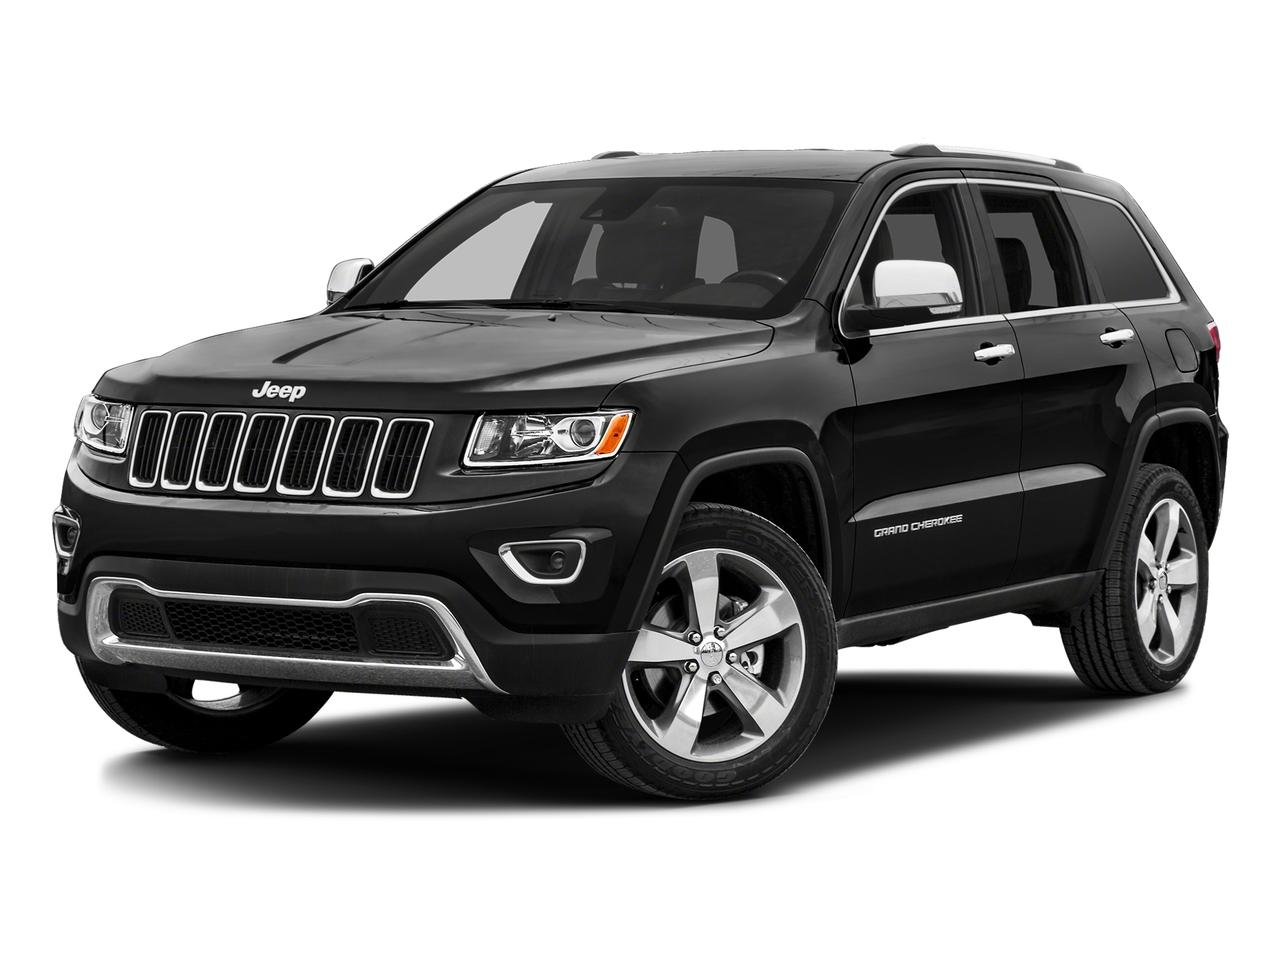 2016 Jeep Grand Cherokee Vehicle Photo in Worthington, MN 56187